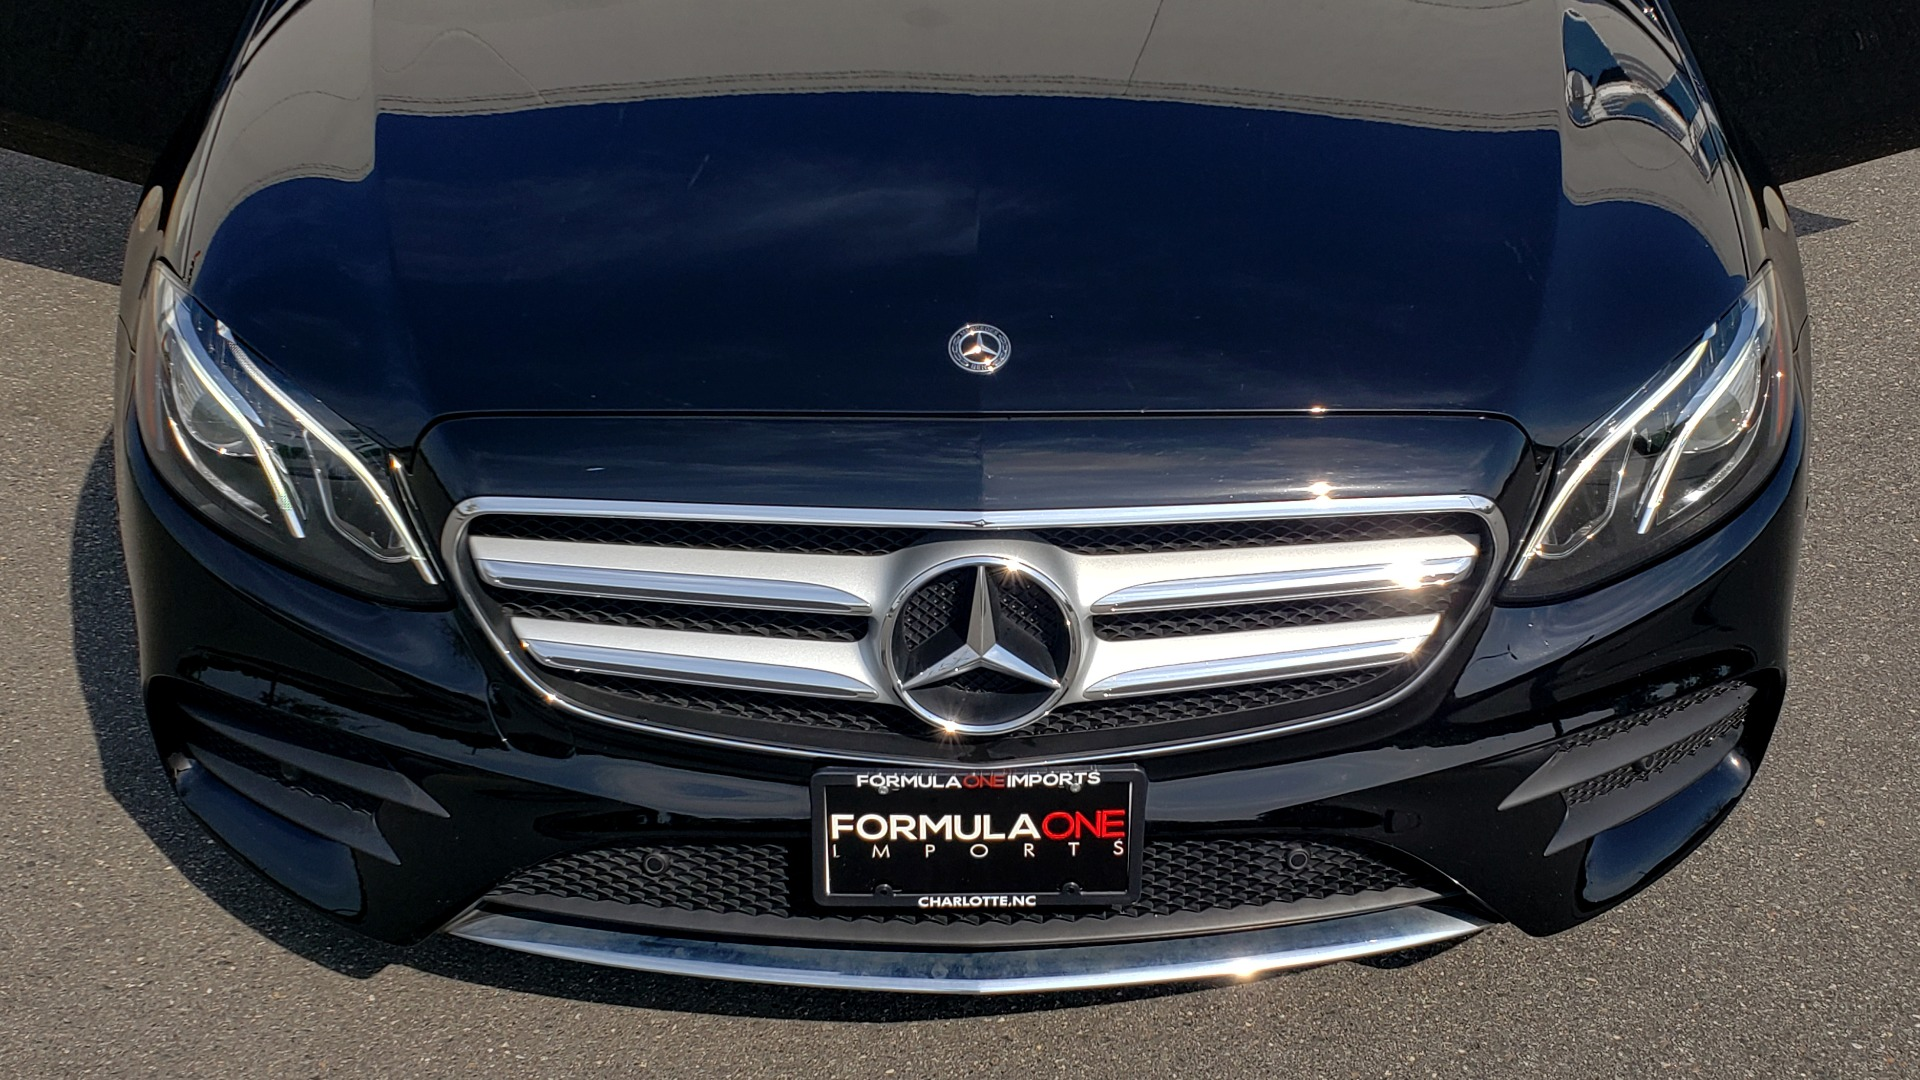 Used 2018 Mercedes-Benz E-CLASS E 300 PREMIUM / 4MATIC / NAV / SUNROOF / H/K SND / REARVIEW for sale $34,195 at Formula Imports in Charlotte NC 28227 23